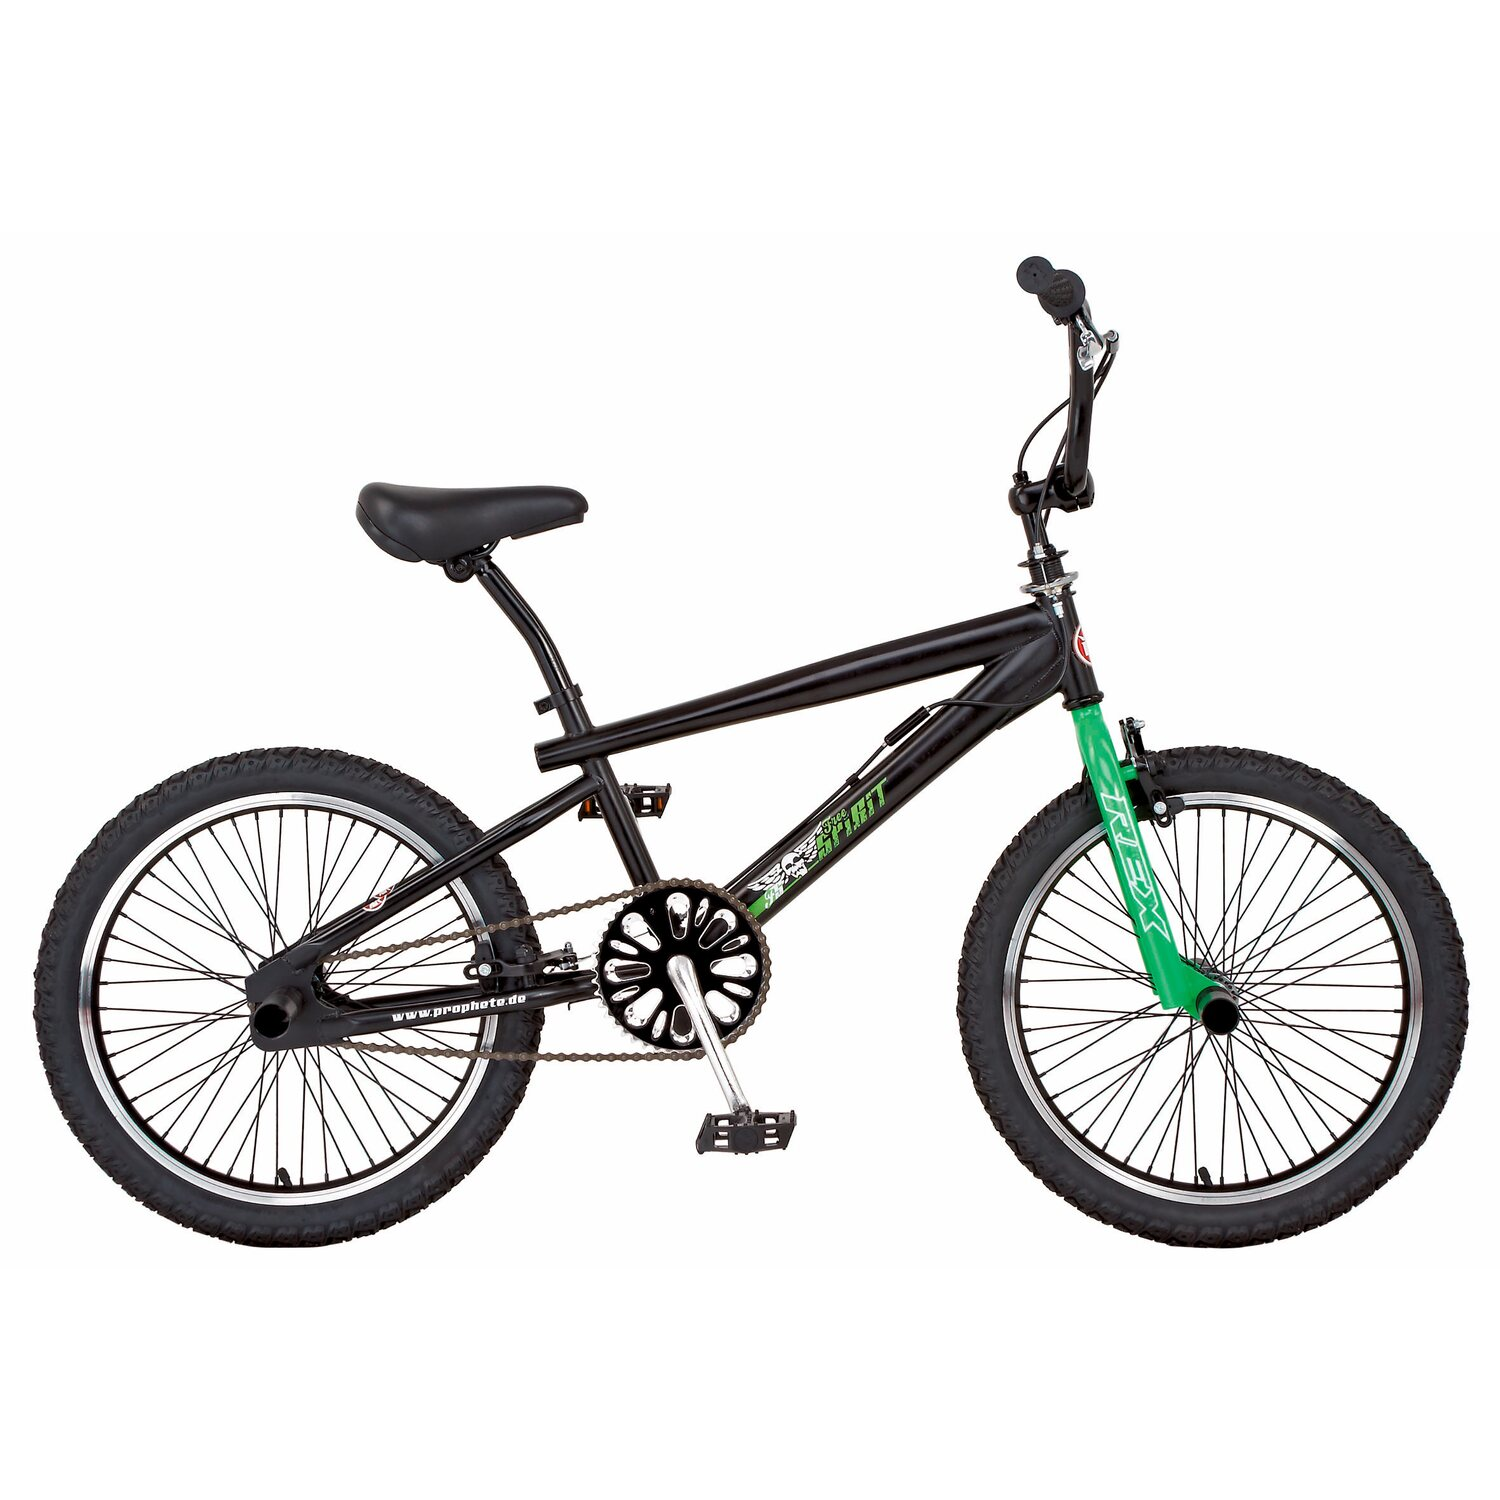 rex bmx bike 20 kaufen bei obi. Black Bedroom Furniture Sets. Home Design Ideas